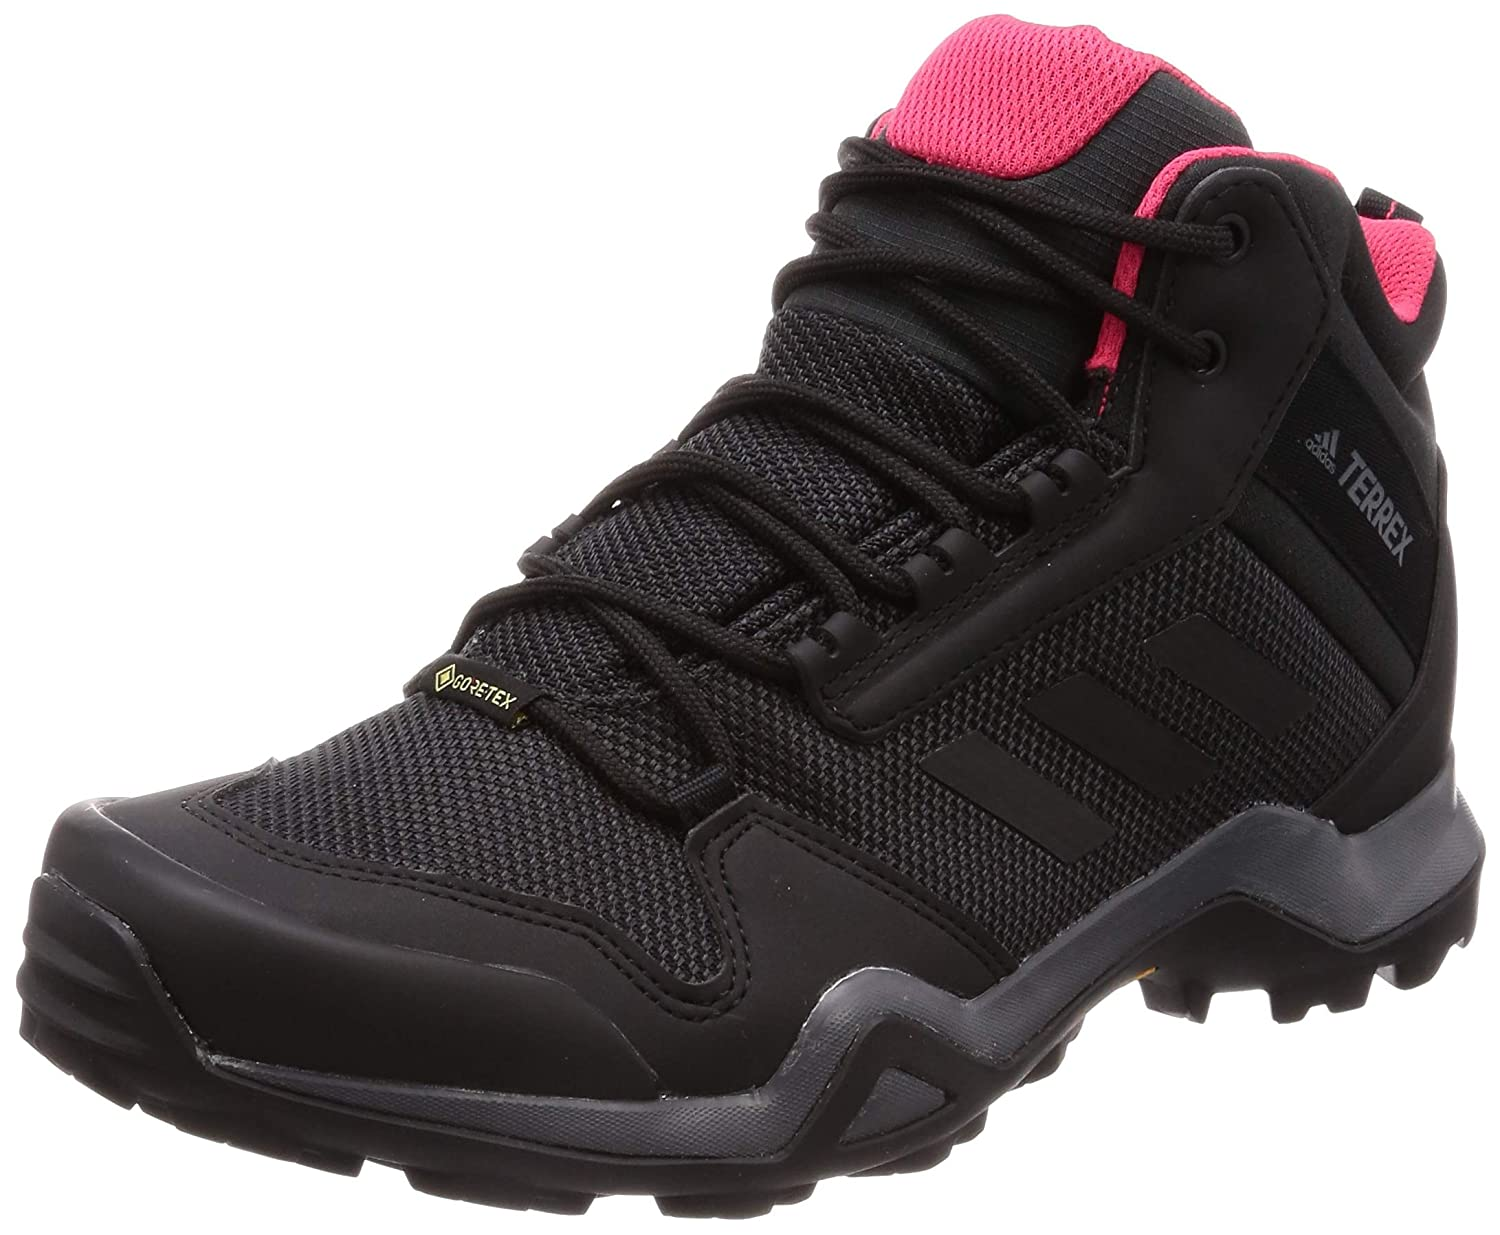 the best attitude 62292 d2fe9 adidas Women s Terrex Ax3 Mid GTX W Trail Running Shoes  Amazon.co.uk  Shoes    Bags